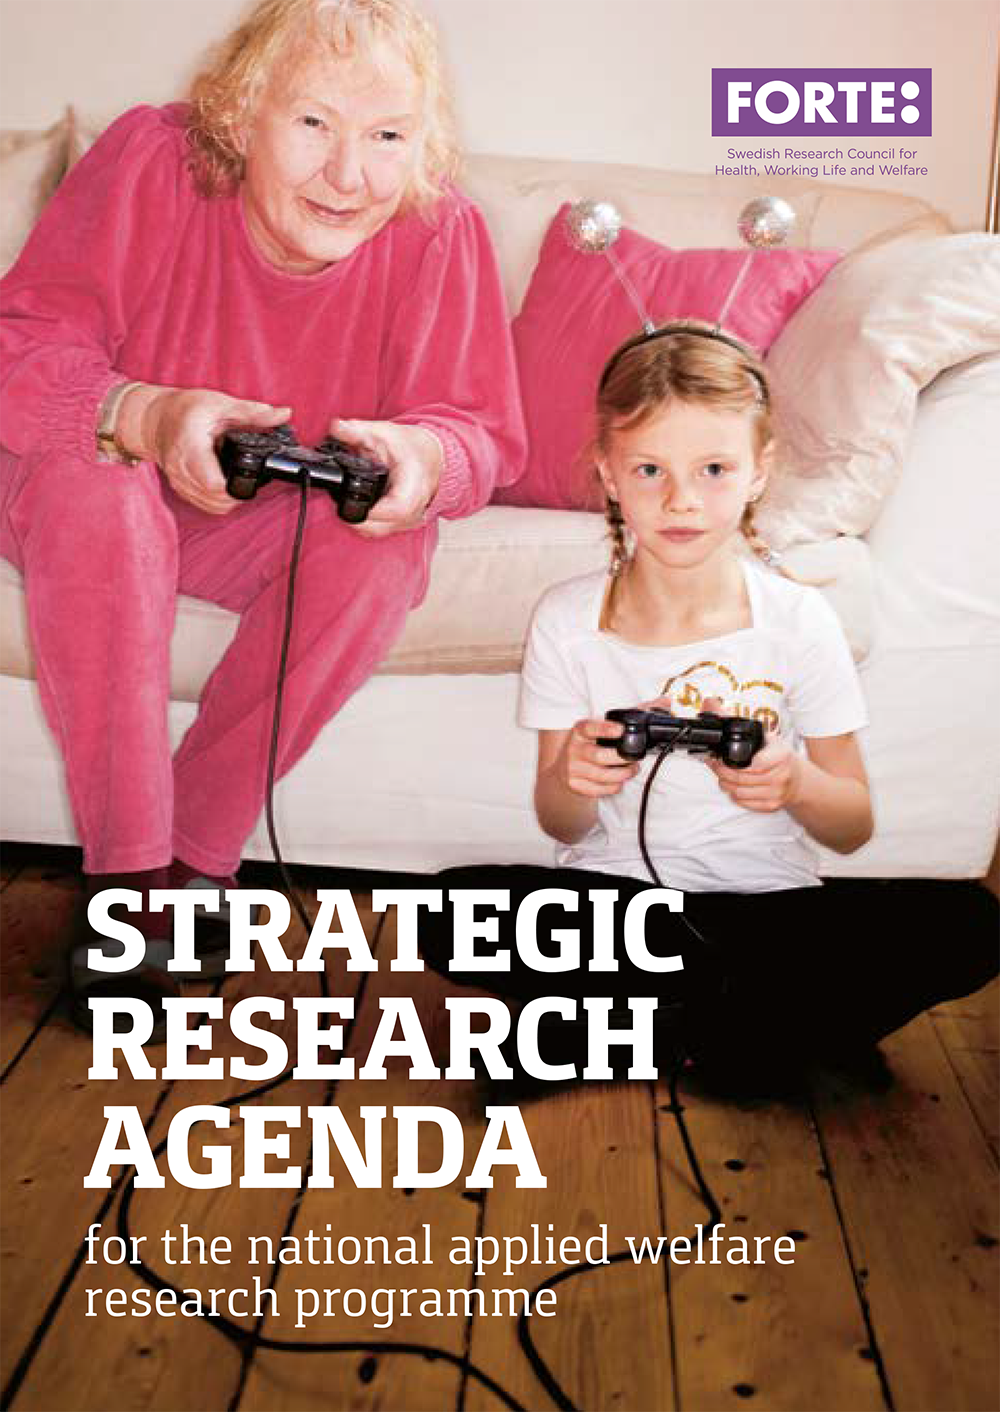 Strategic research agenda for the national applied welfare programme